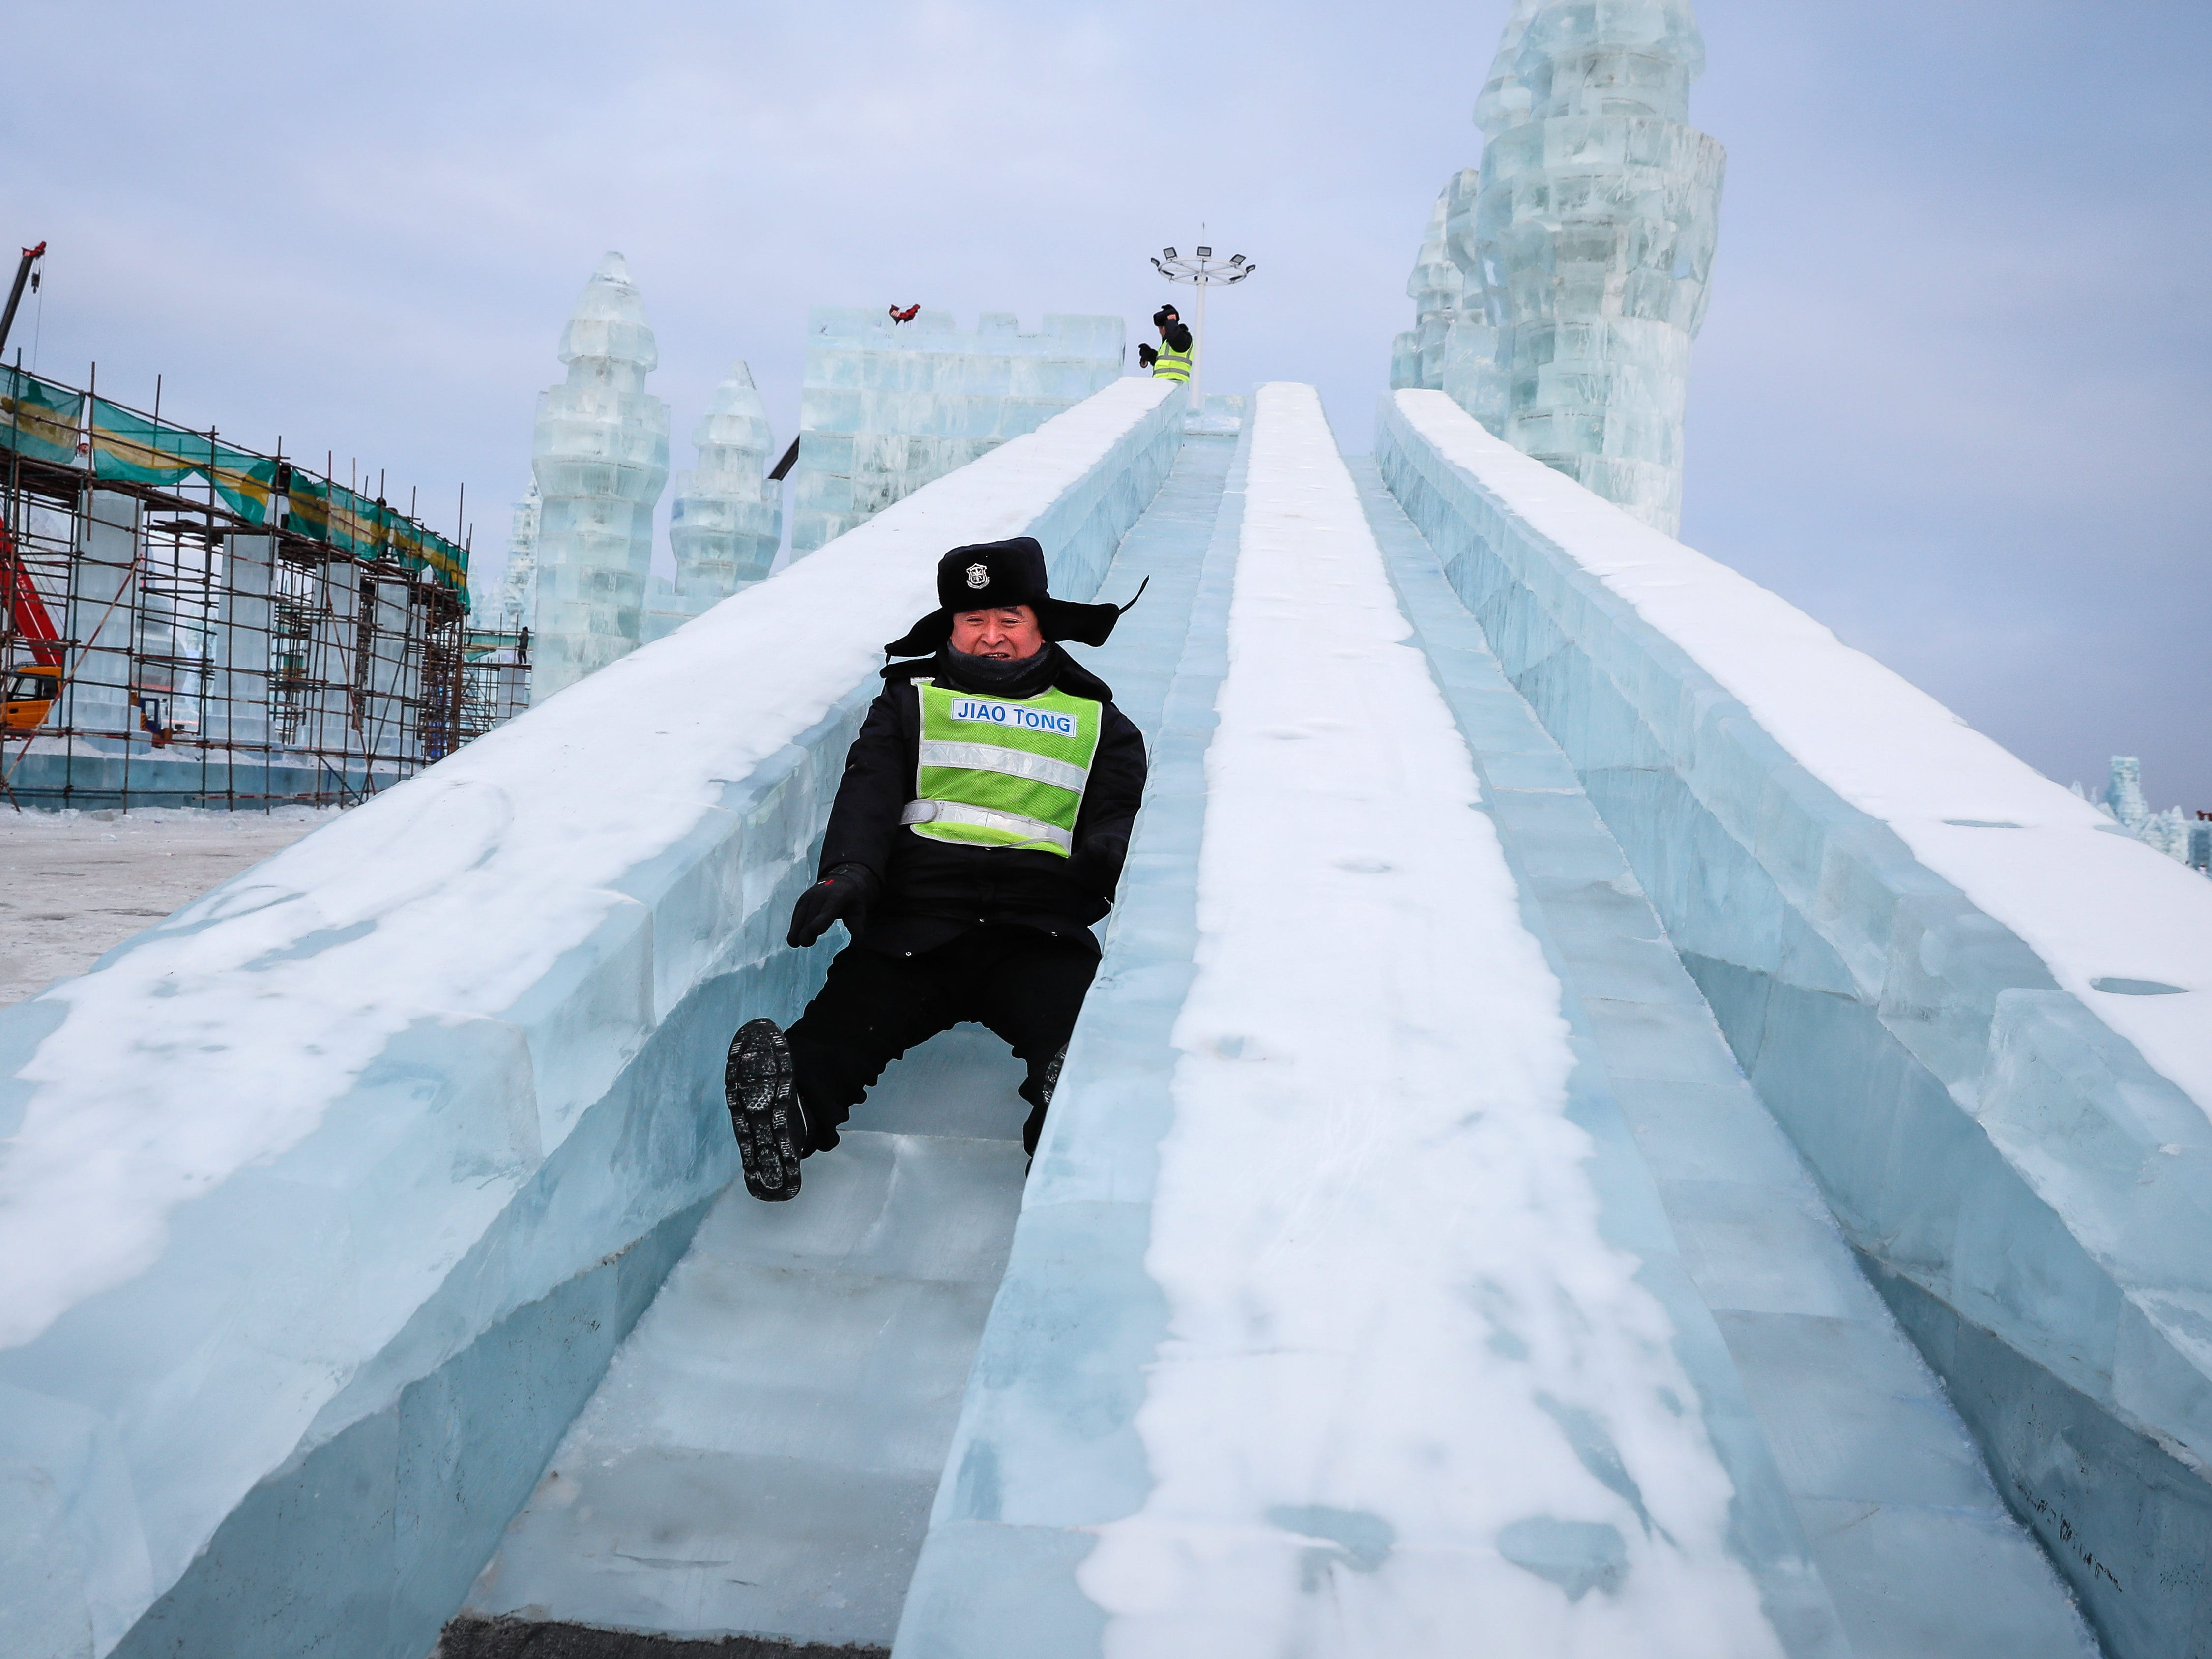 A security guard rides a slide of an ice sculpture at the Ice and Snow World during the annual Harbin International Ice and Snow Sculpture Festival.